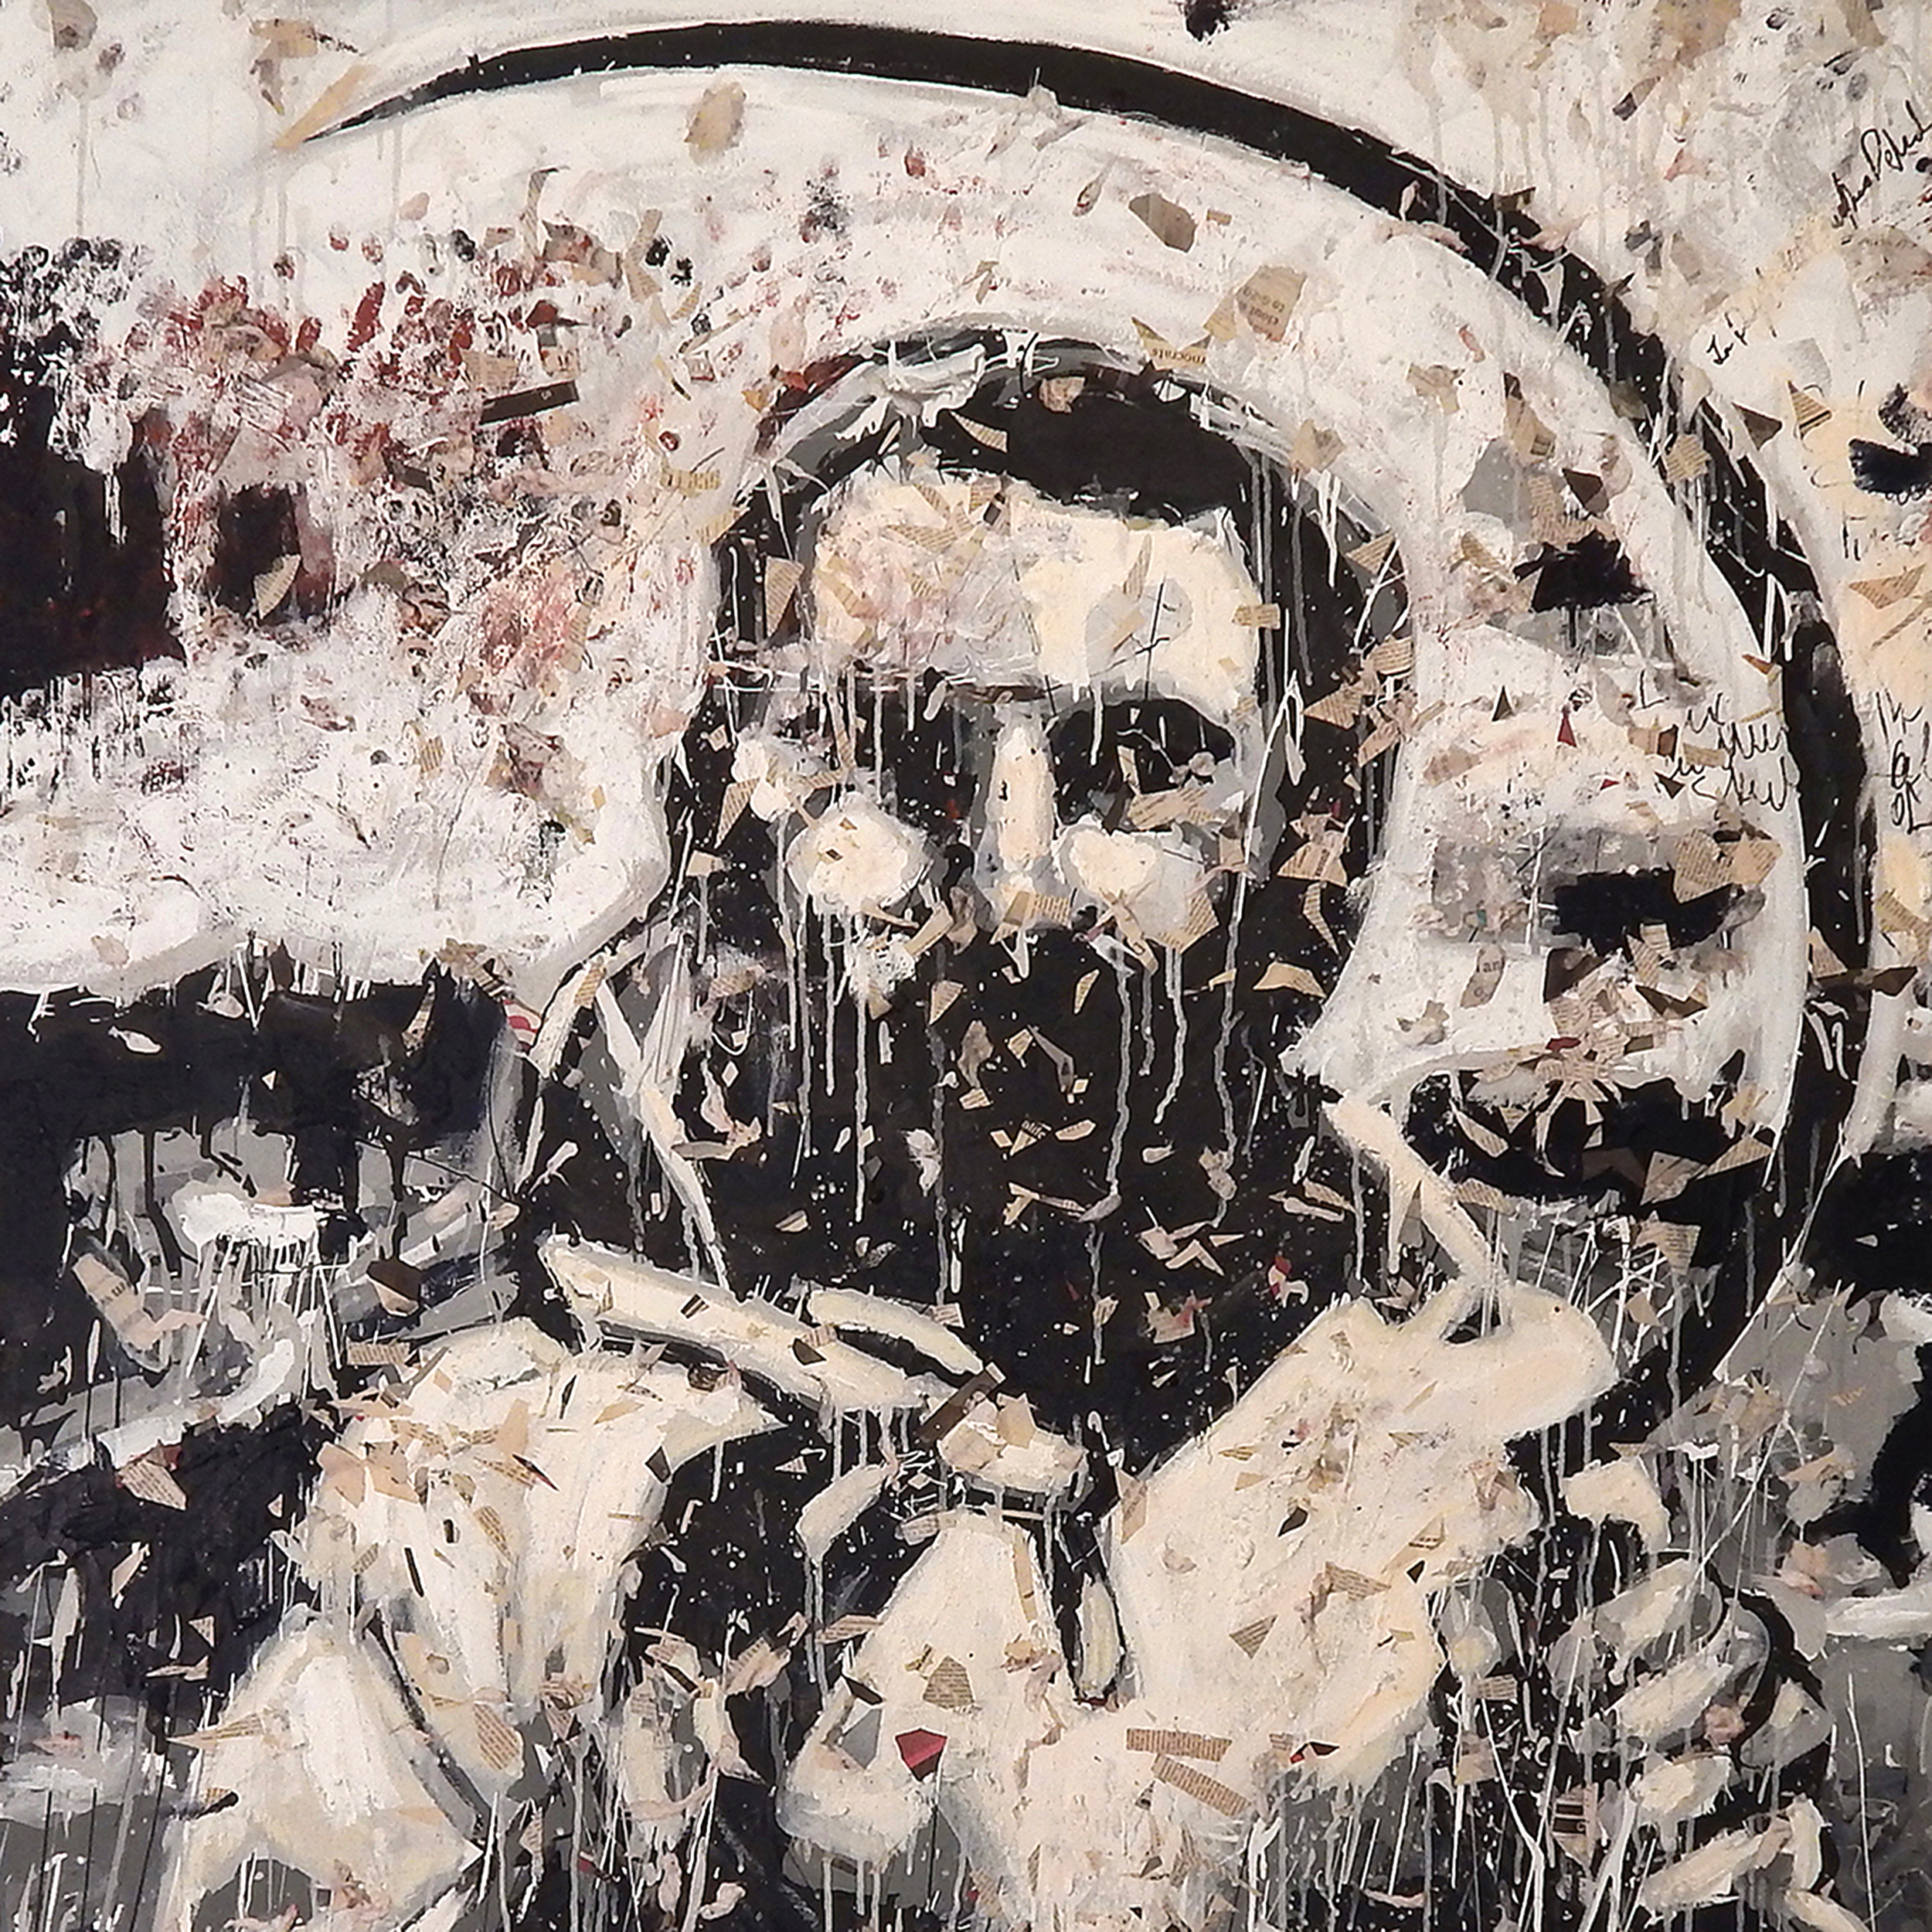 """Adam Turl, """"Portugal 1974"""" (A Painter for Our Time), detail,acrylic, cotton, concrete, newspaper and ash on canvas, 2014"""